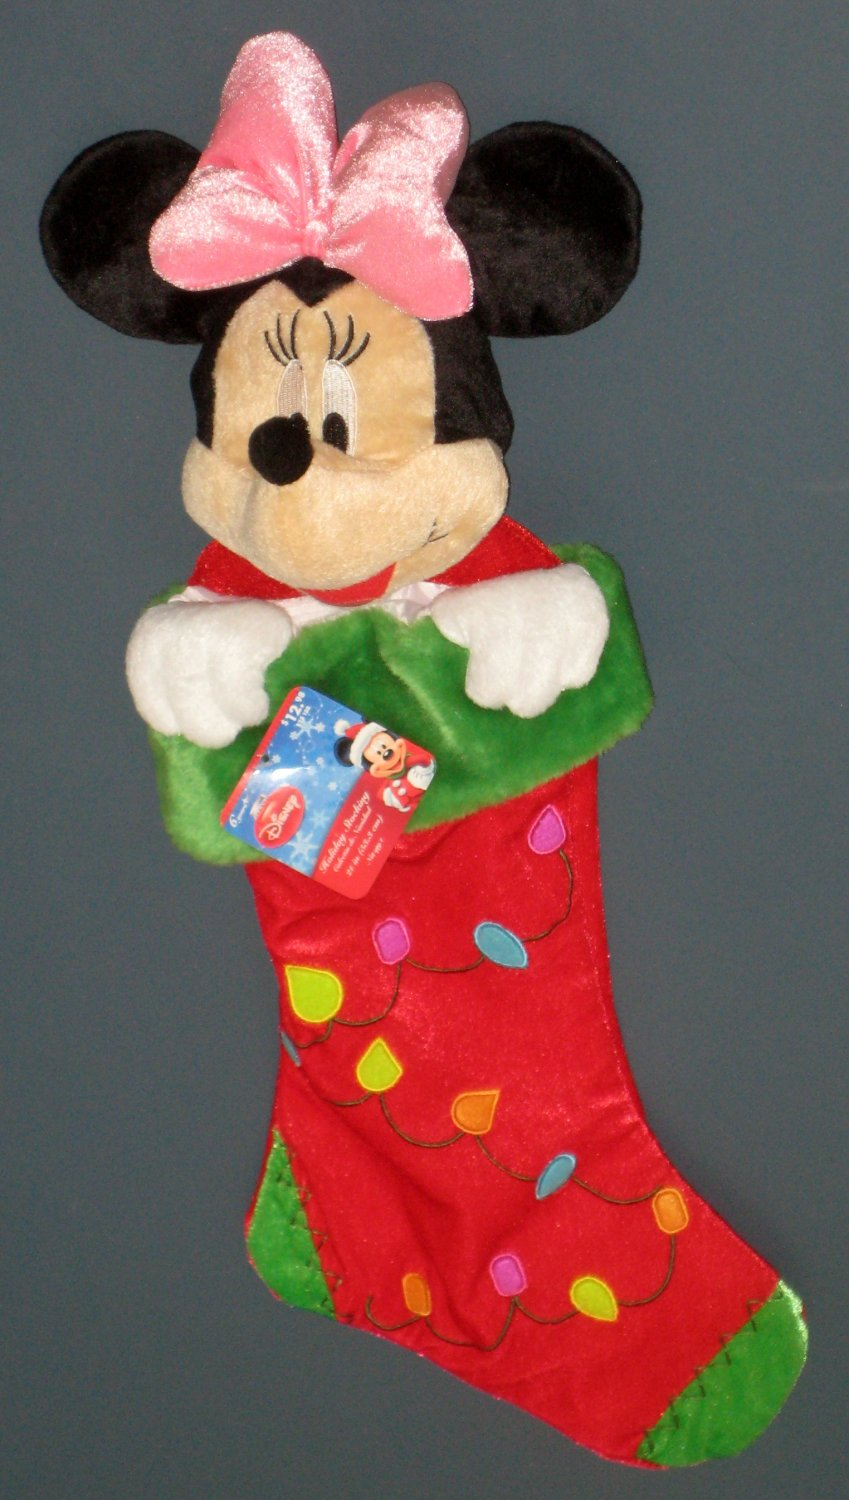 SOLD Minnie Mouse Plush Christmas Stocking with Tag Walt Disney